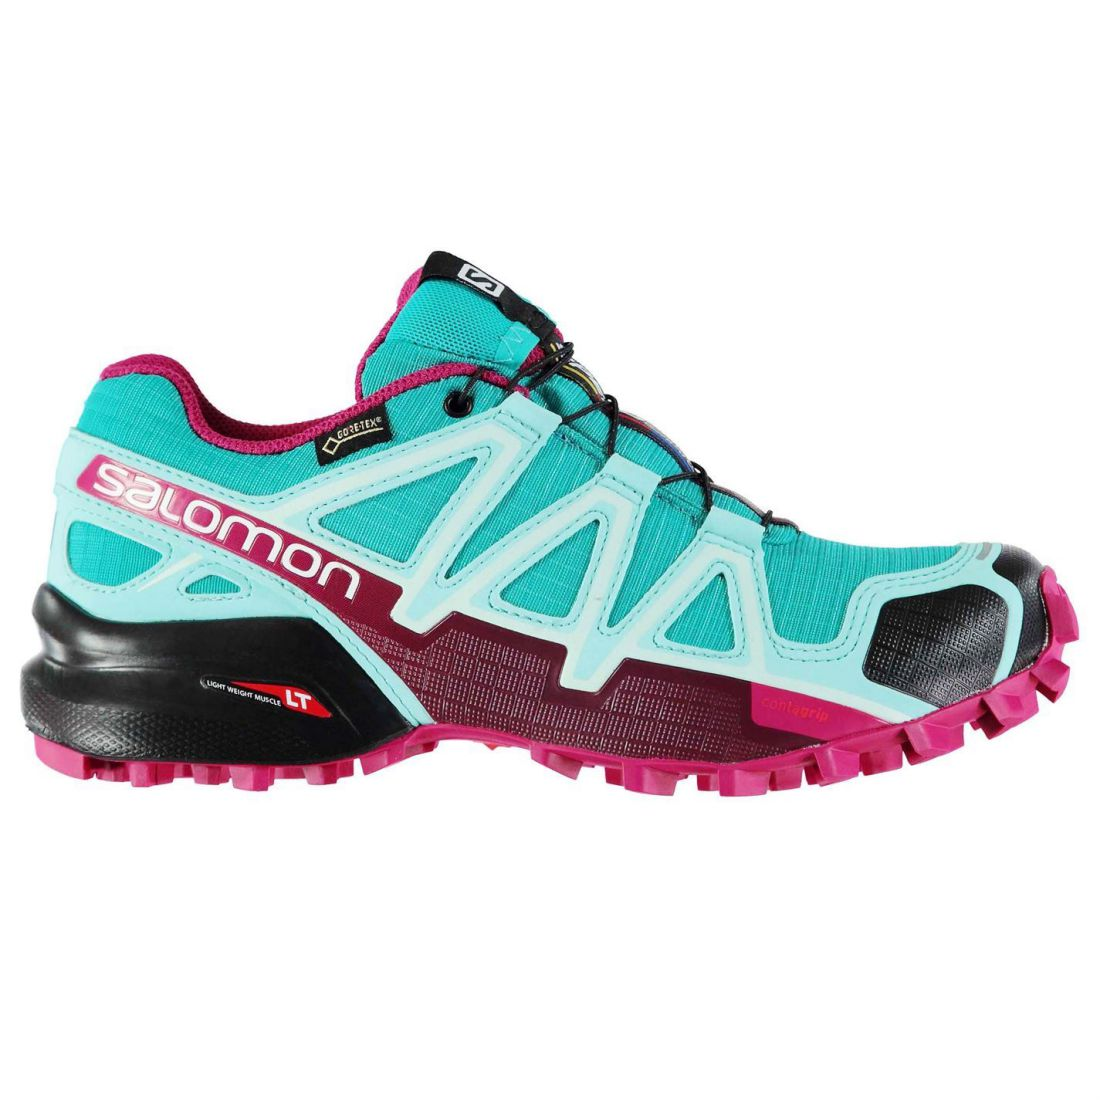 629ab0a6ec4d Image is loading Salomon-SpeedCross-4-GTX-Trail-Running-Shoes-Womens